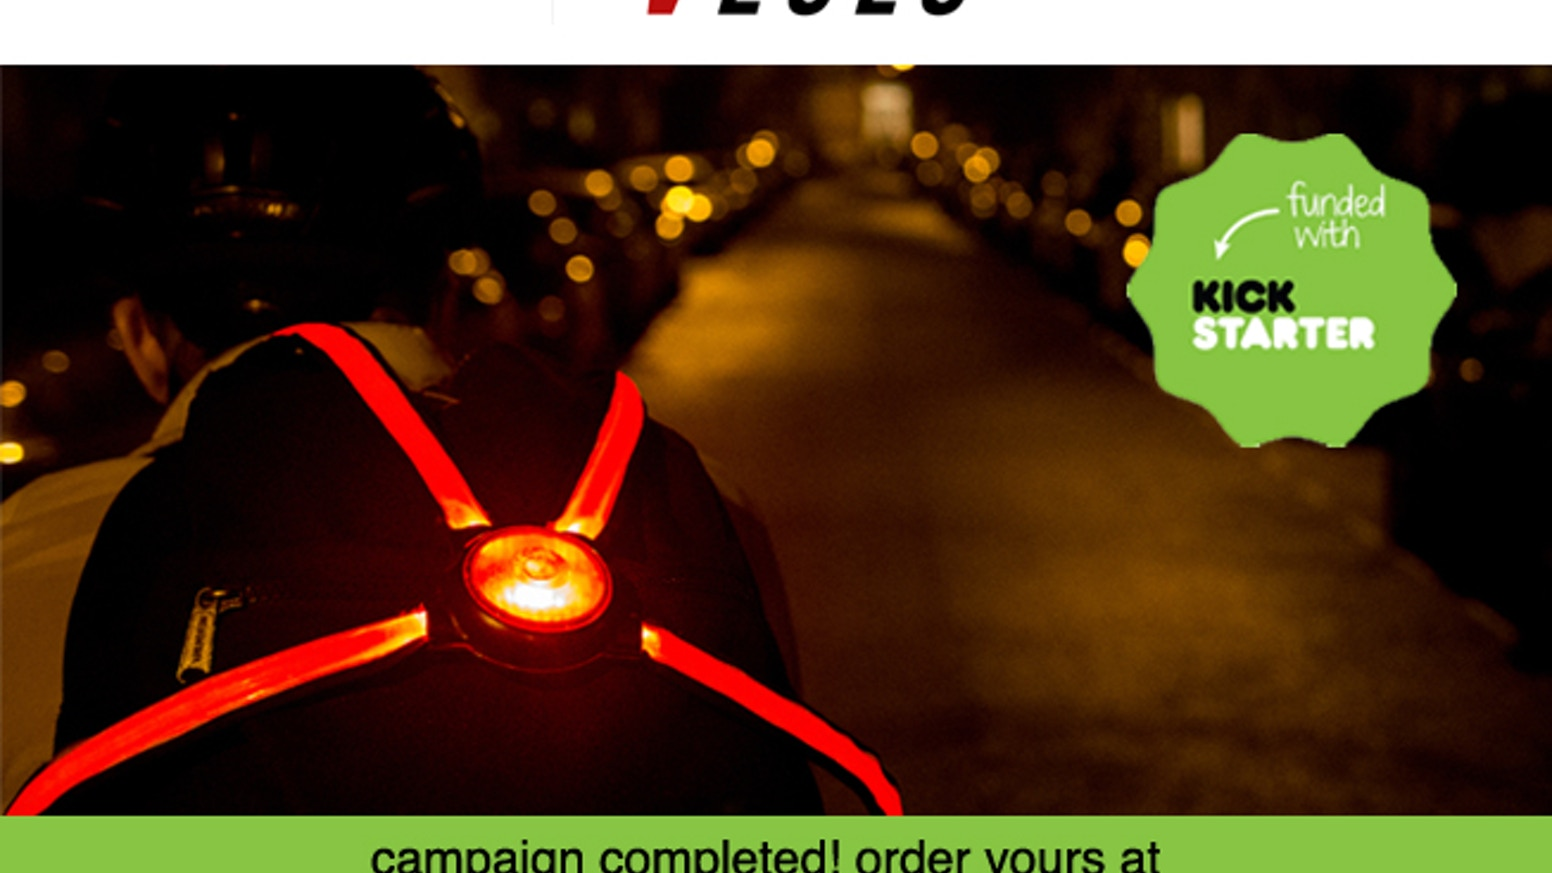 The COMMUTER X4 is a wearable, fibre optic rear bike light that helps drivers judge distance, width and speed of cyclists.